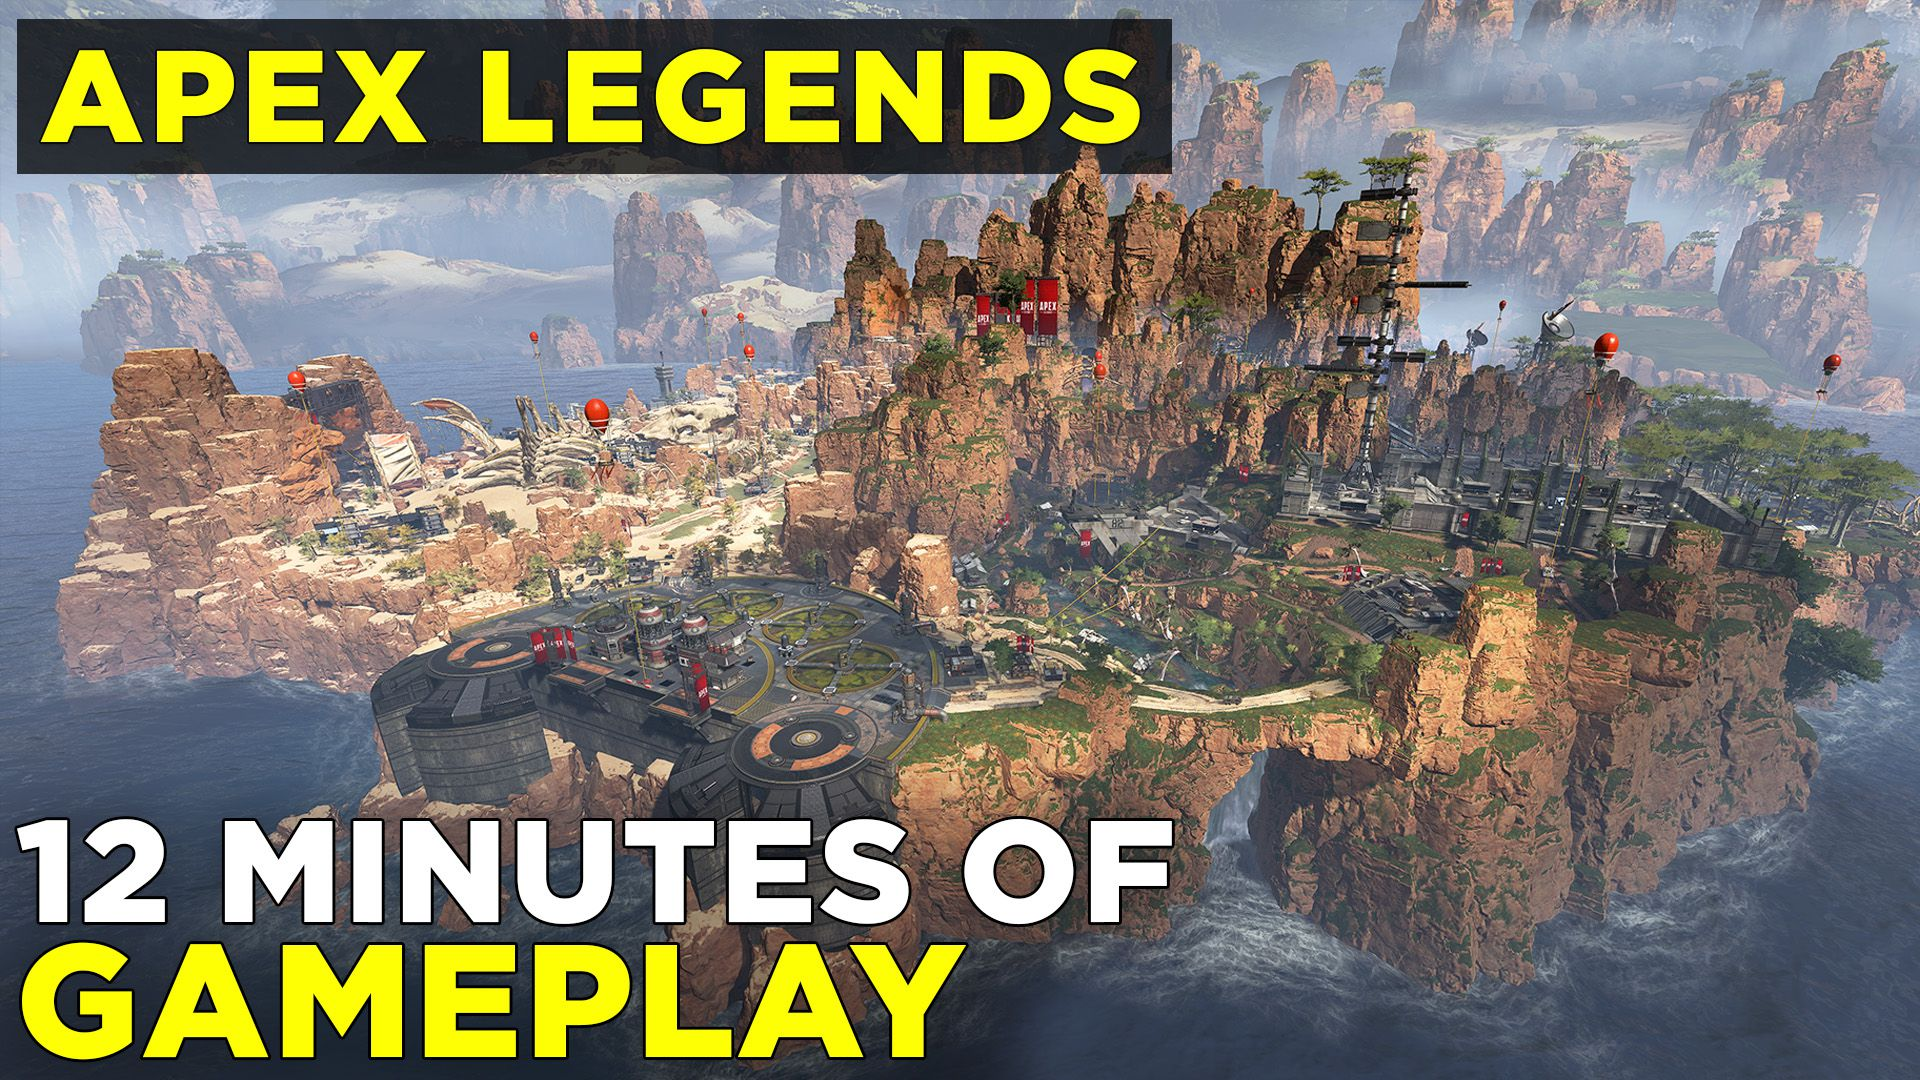 Apex Legends: Hands-on impressions of Titanfall battle royale - Polygon